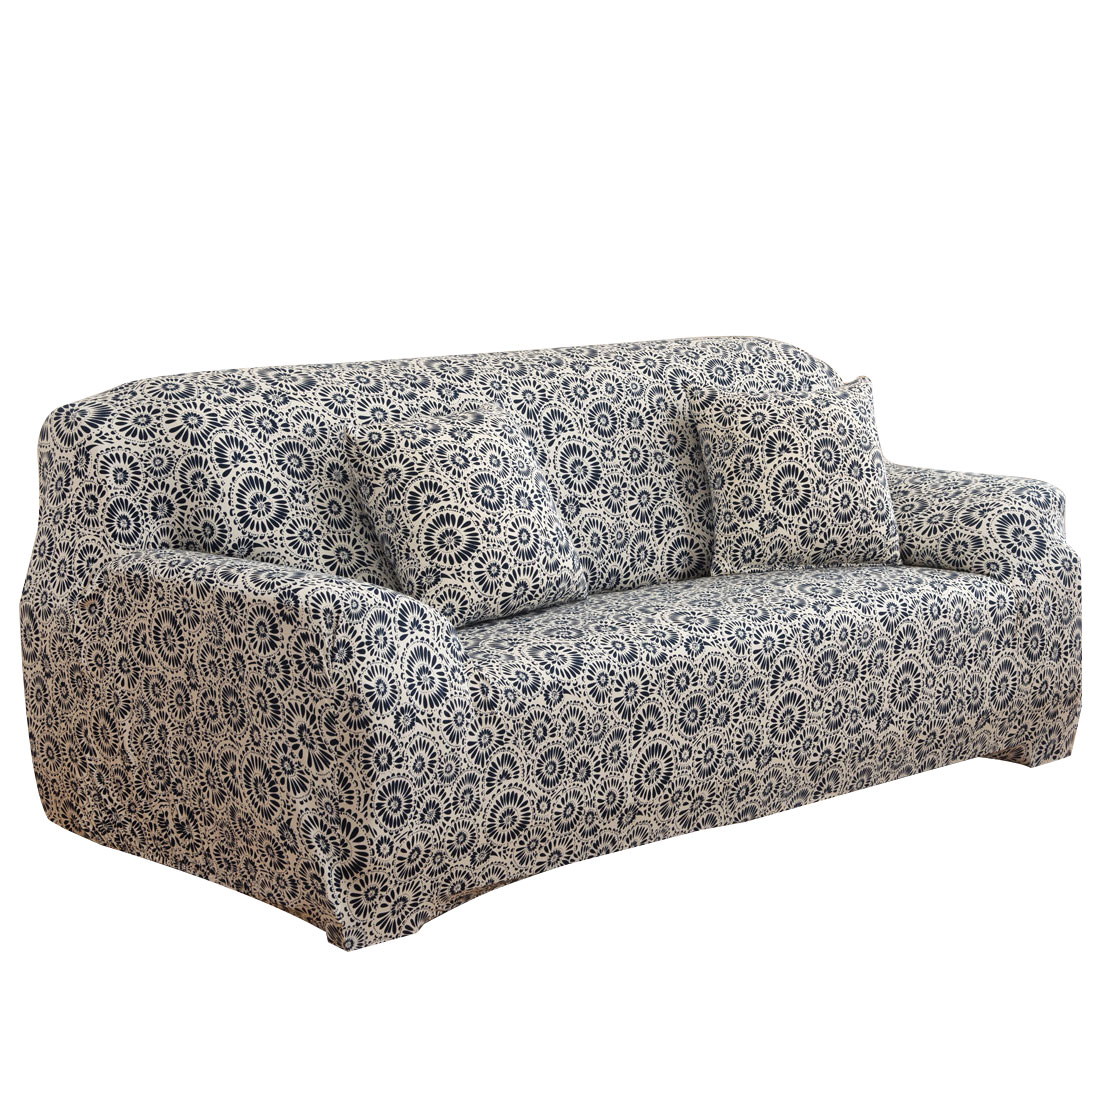 Household Polyester Ring Prints Elastic Sofa Loveseat Cover Slipcover Protector 55-74 Inch